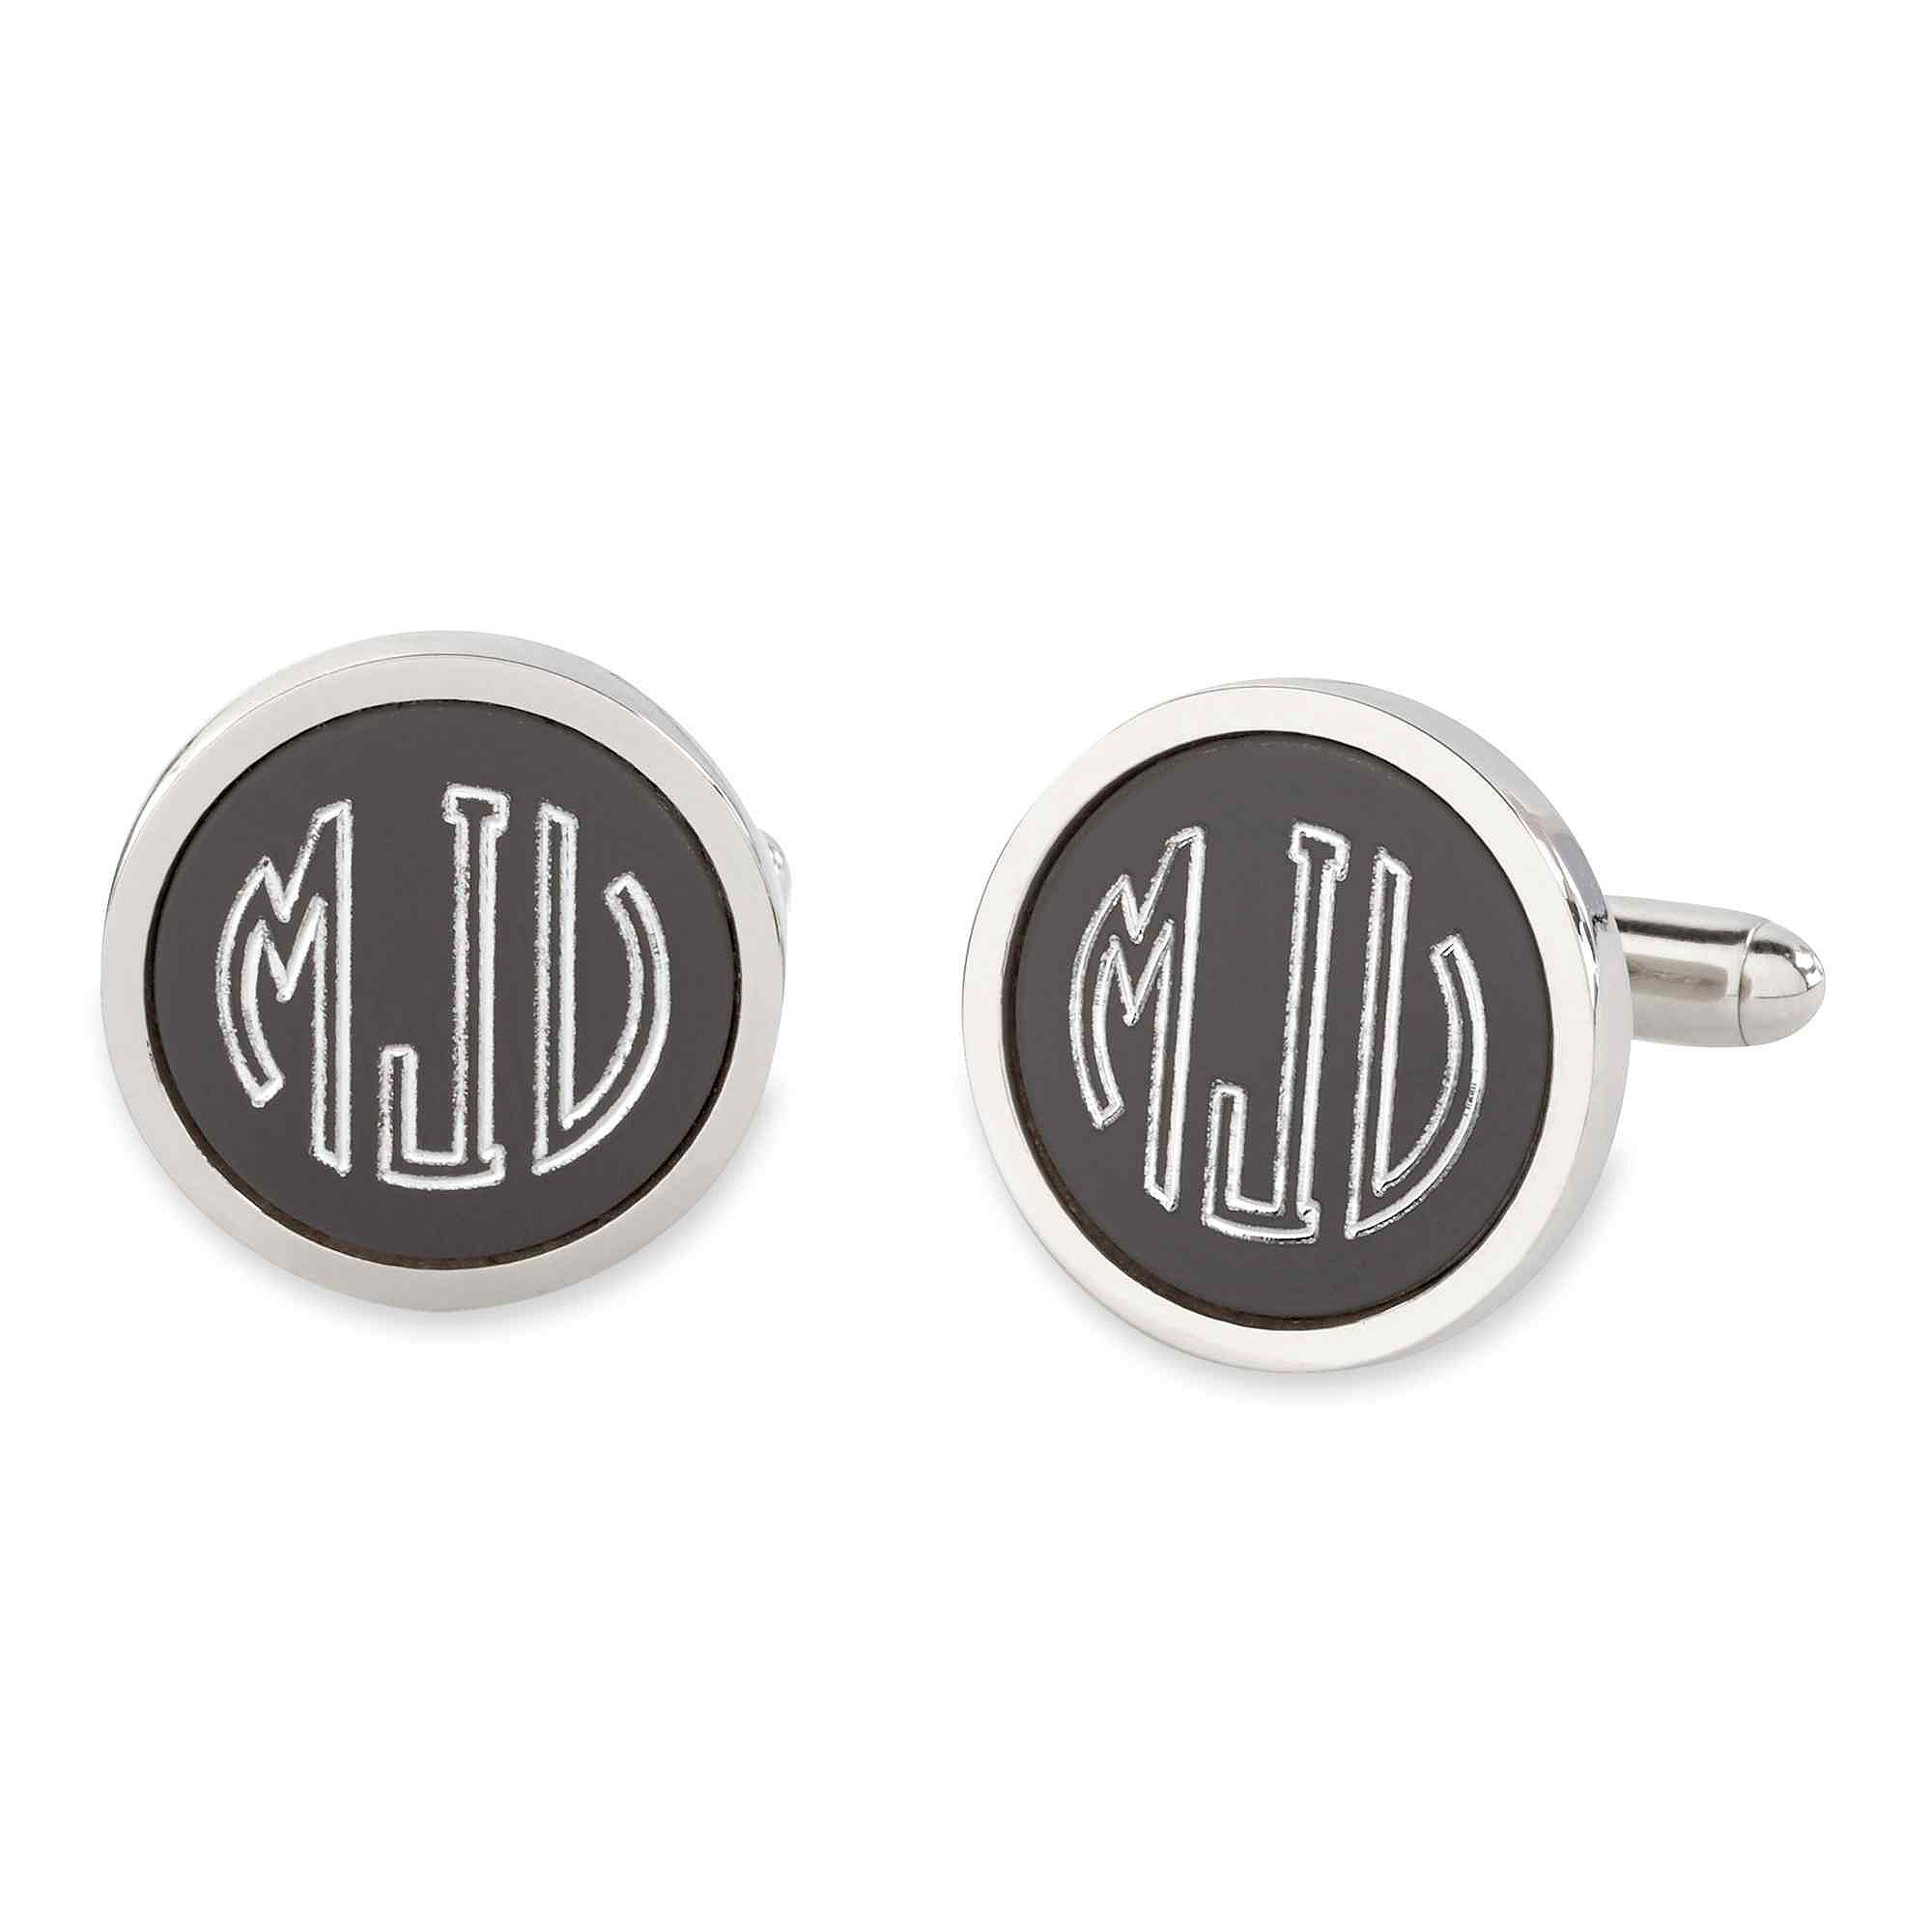 Personalized Anodized Aluminum Round Cuff Links